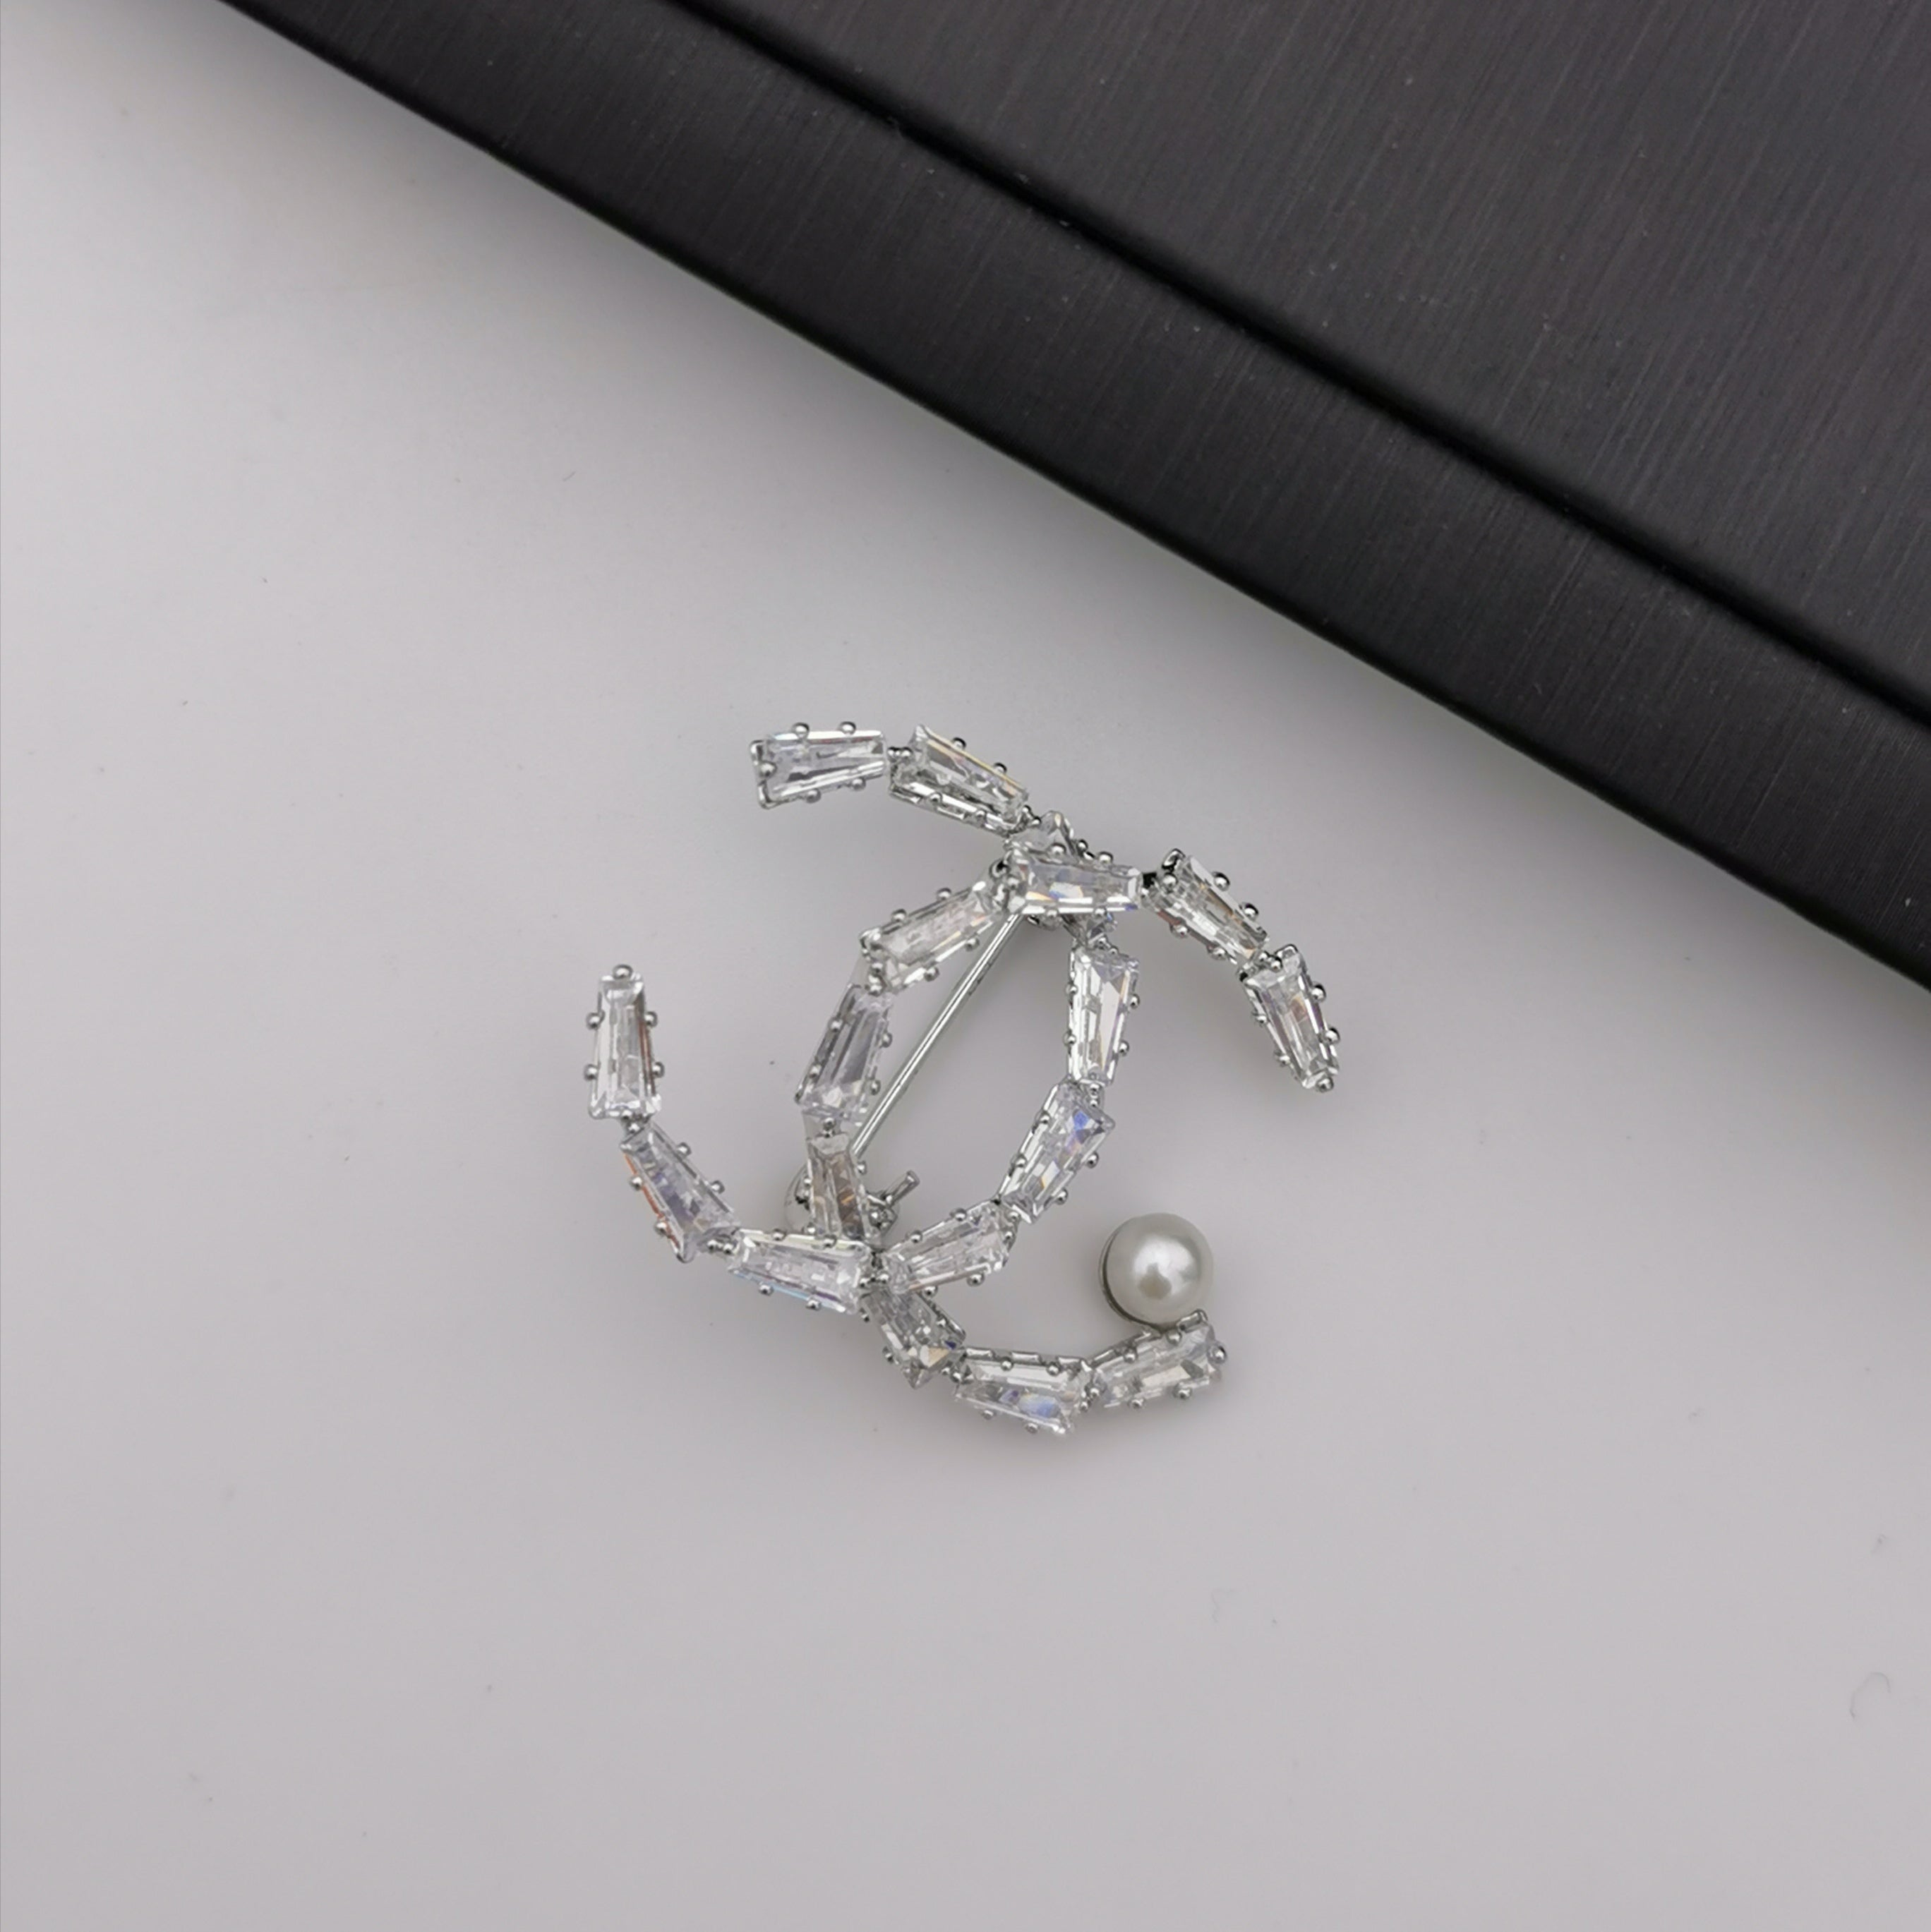 Letter X freshwater pearl brooch